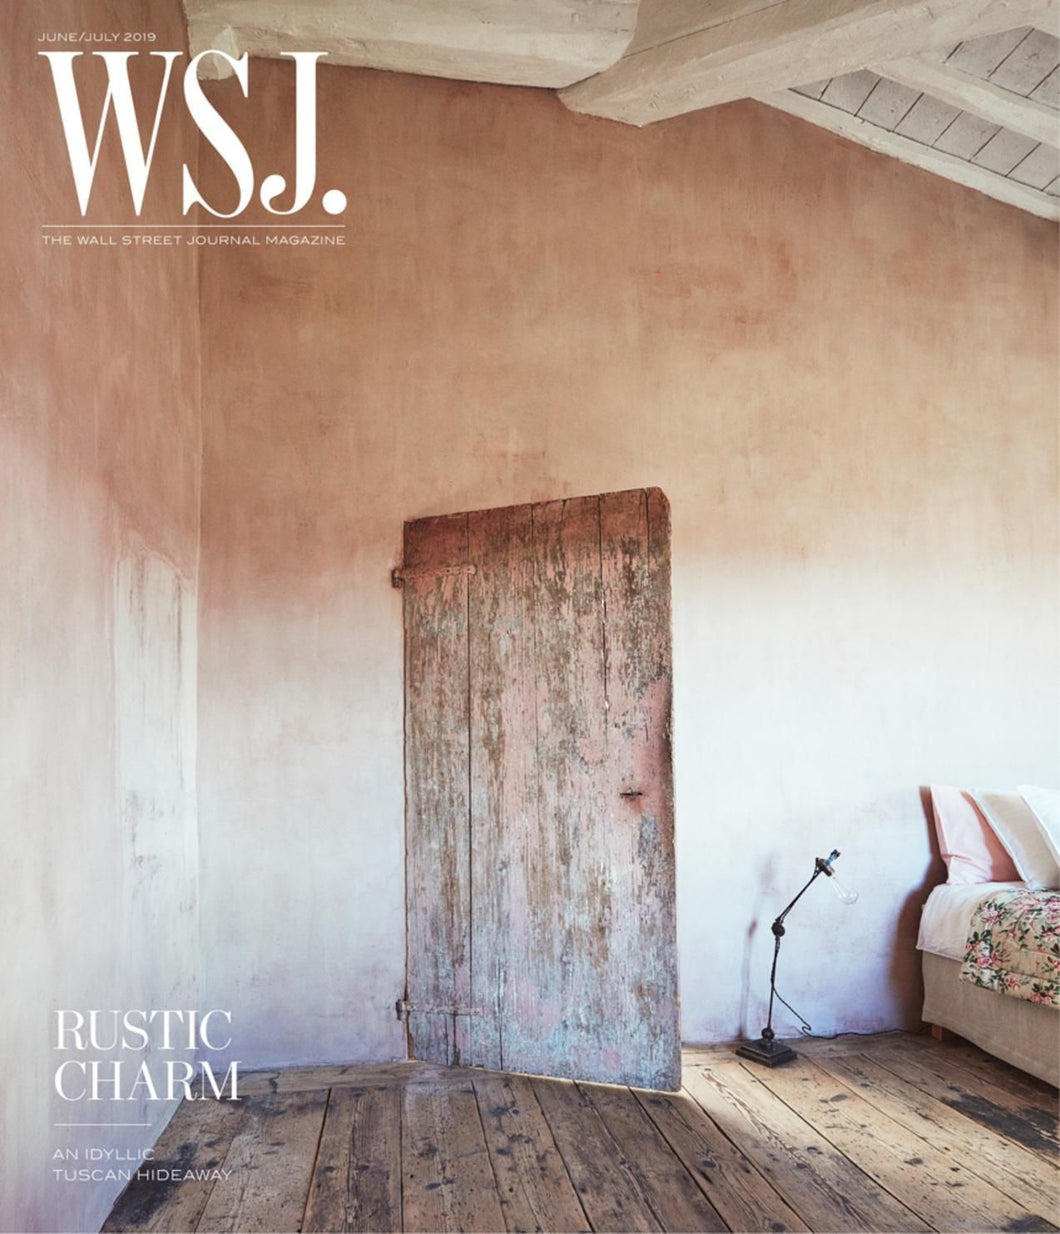 Summer Escapes | WSJ. Magazine, June/July 2019